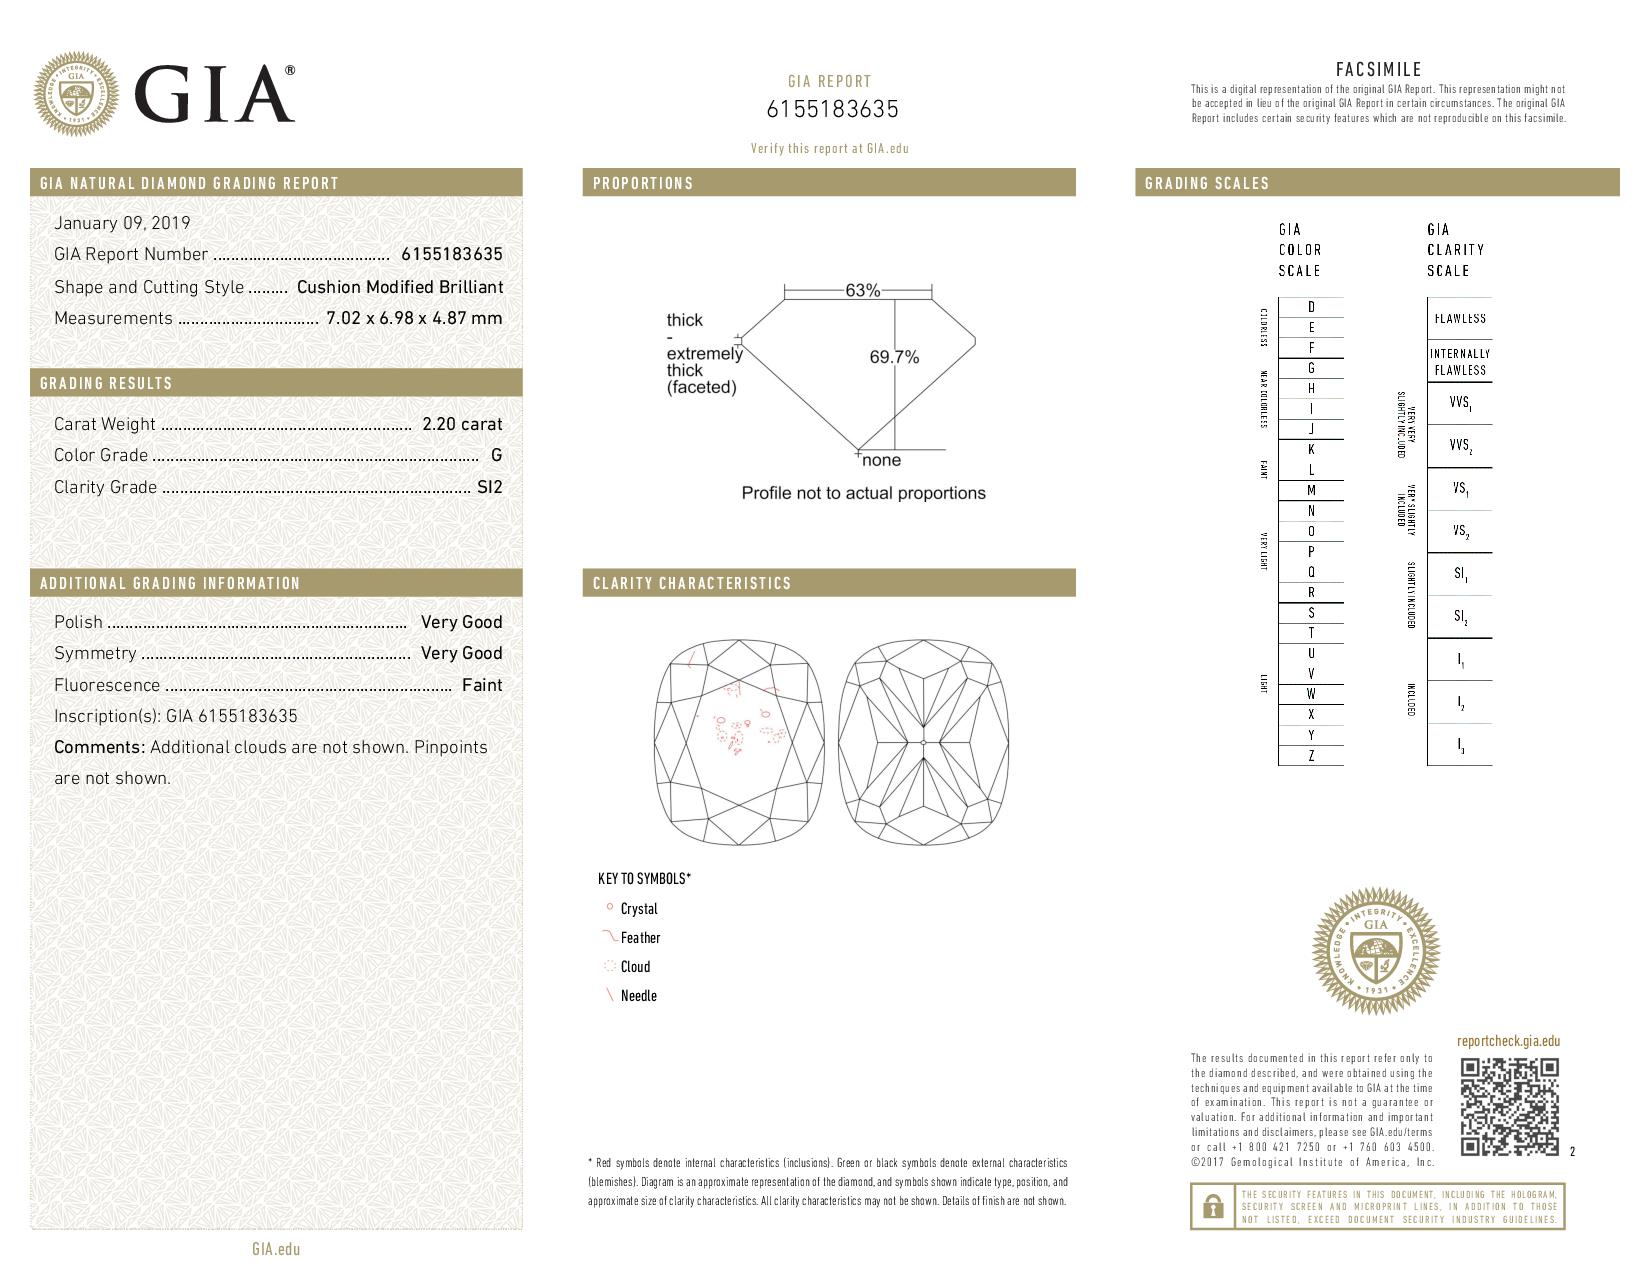 This is a 2.20 carat cushion shape, G color, SI2 clarity natural diamond accompanied by a GIA grading report.